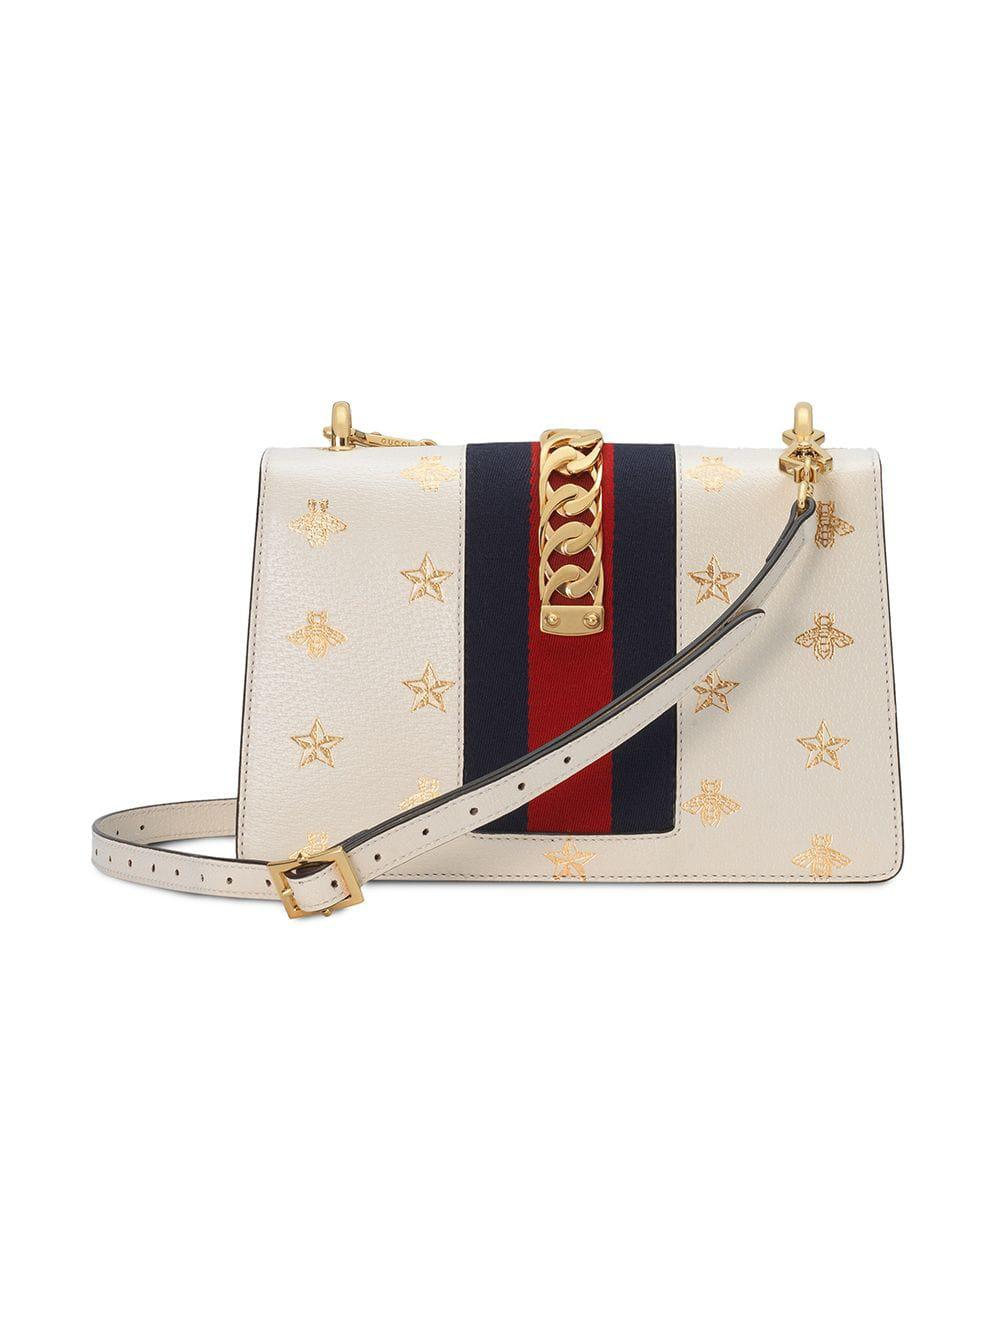 254b5163baa Gucci Sylvie Bee Star Small Shoulder Bag in White - Lyst